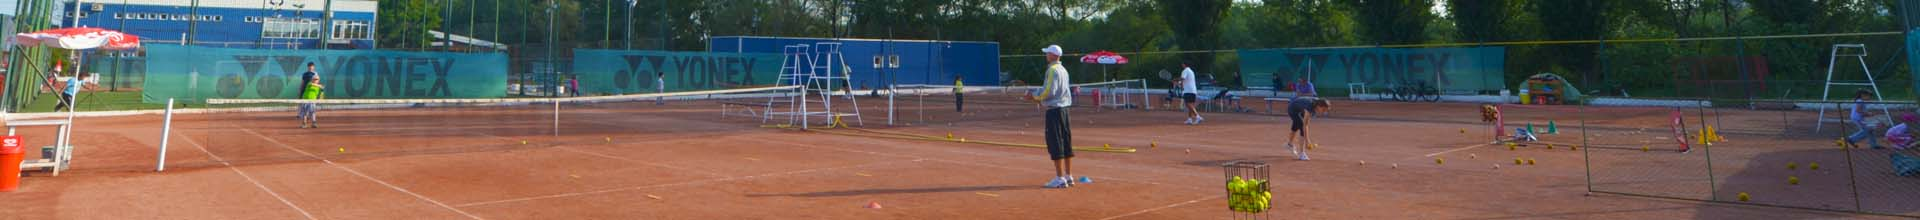 Tenis - Activitati Activ Club Health & Fitness Center, Arad